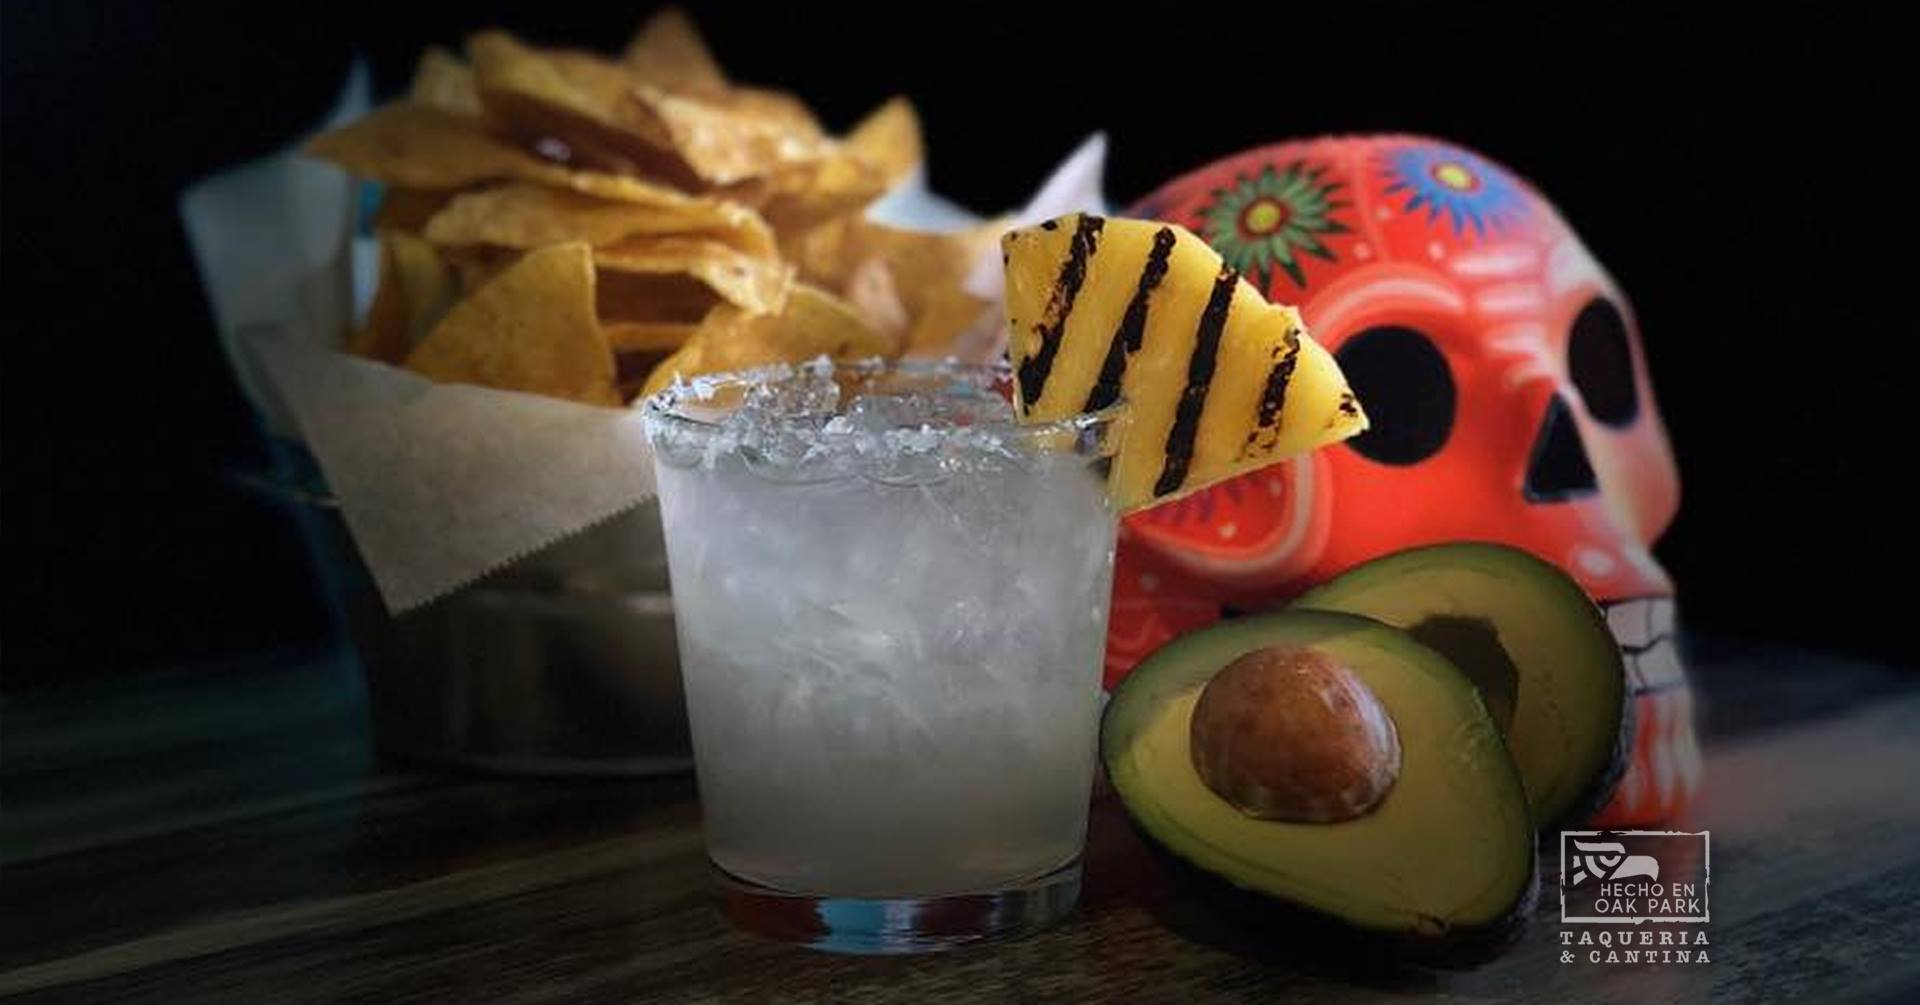 margarita with a grilled pineapple wedge with tortilla chips and an avocado on the table with decor